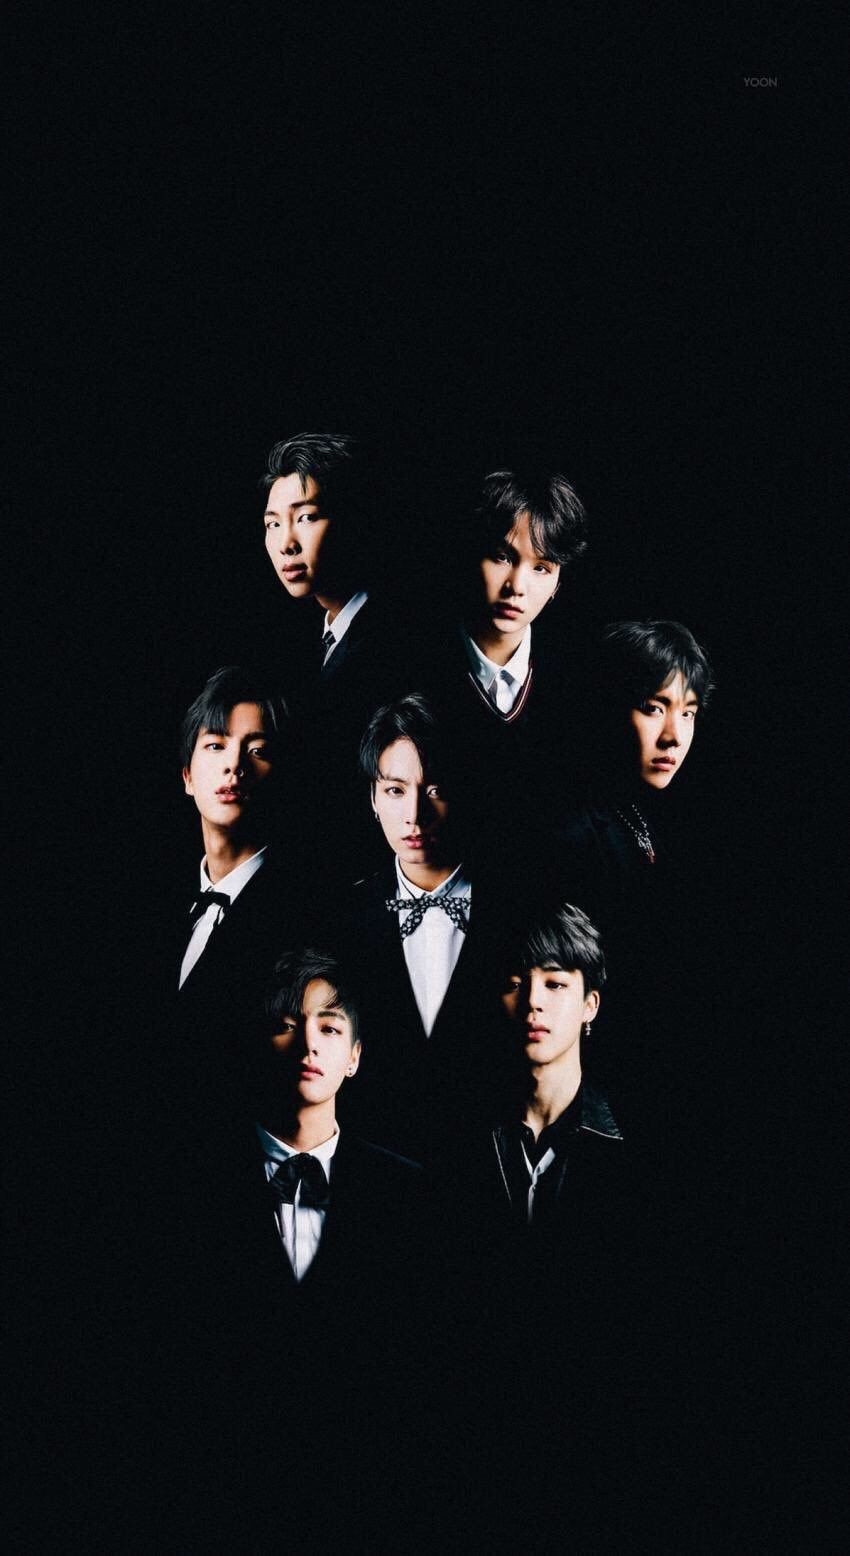 Bts Wallpaper Iphone Bts Songs That Struck Armys Hearts Kdramabuzz